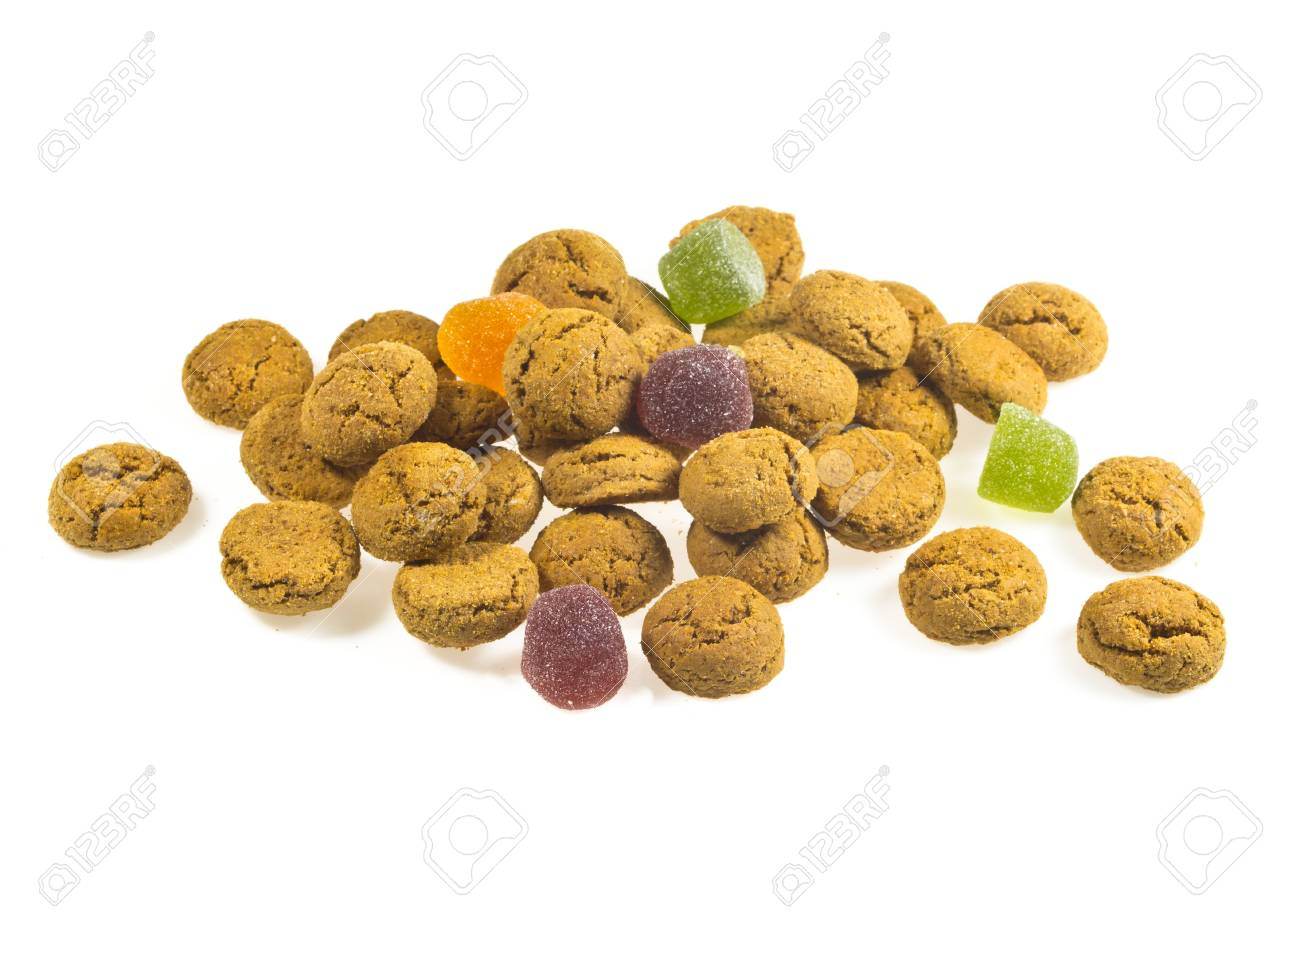 Pile of Pepernoten, typical Dutch treat for Sinterklaas in december, over White Background Stock Photo - 16627208